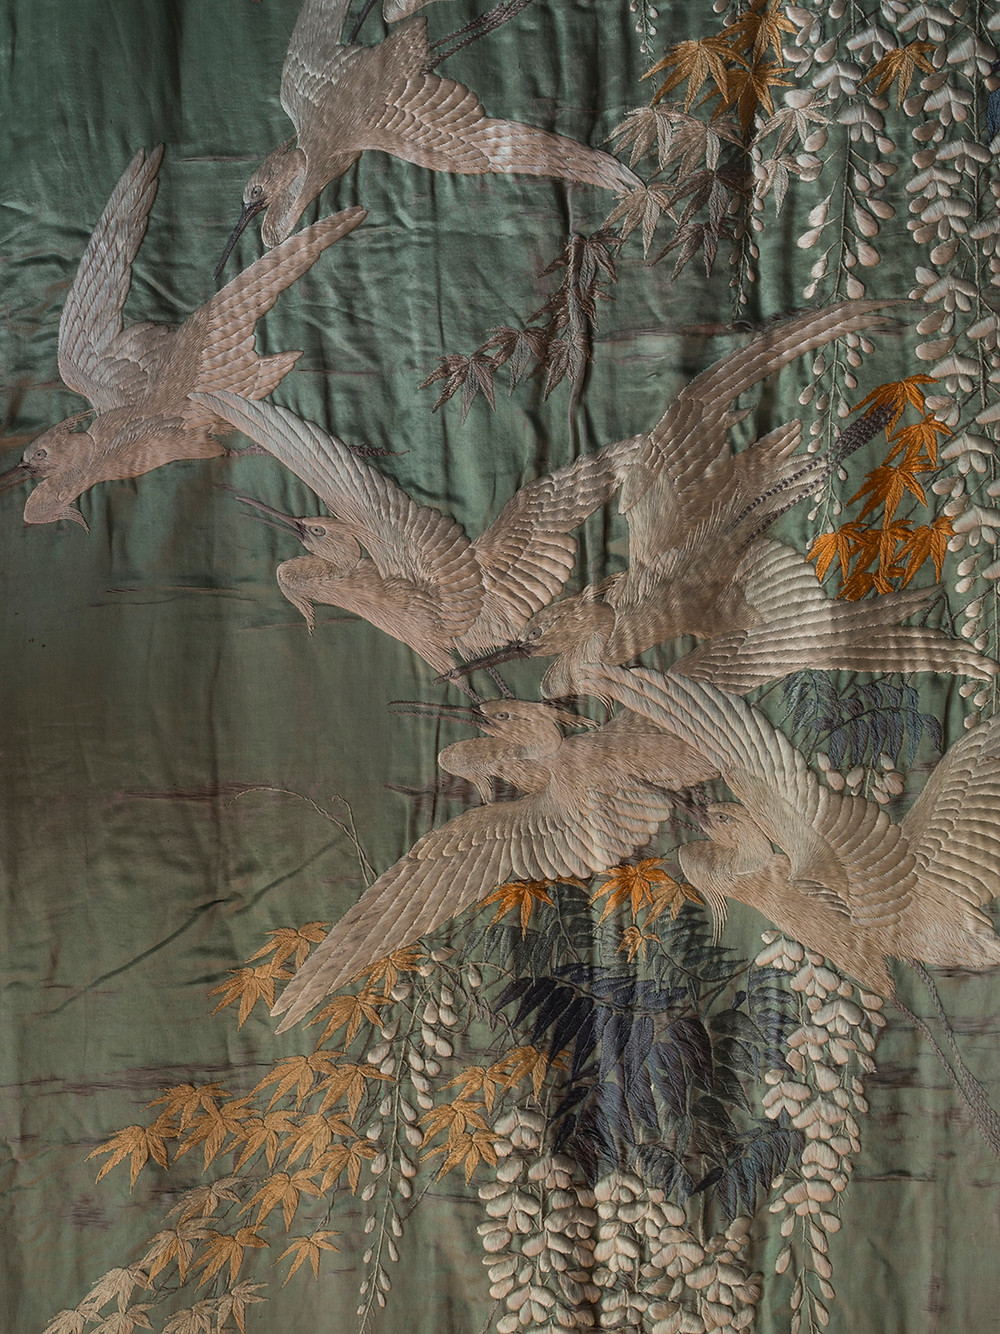 japanese meiji embroidery with seven cranes flying through wisteria